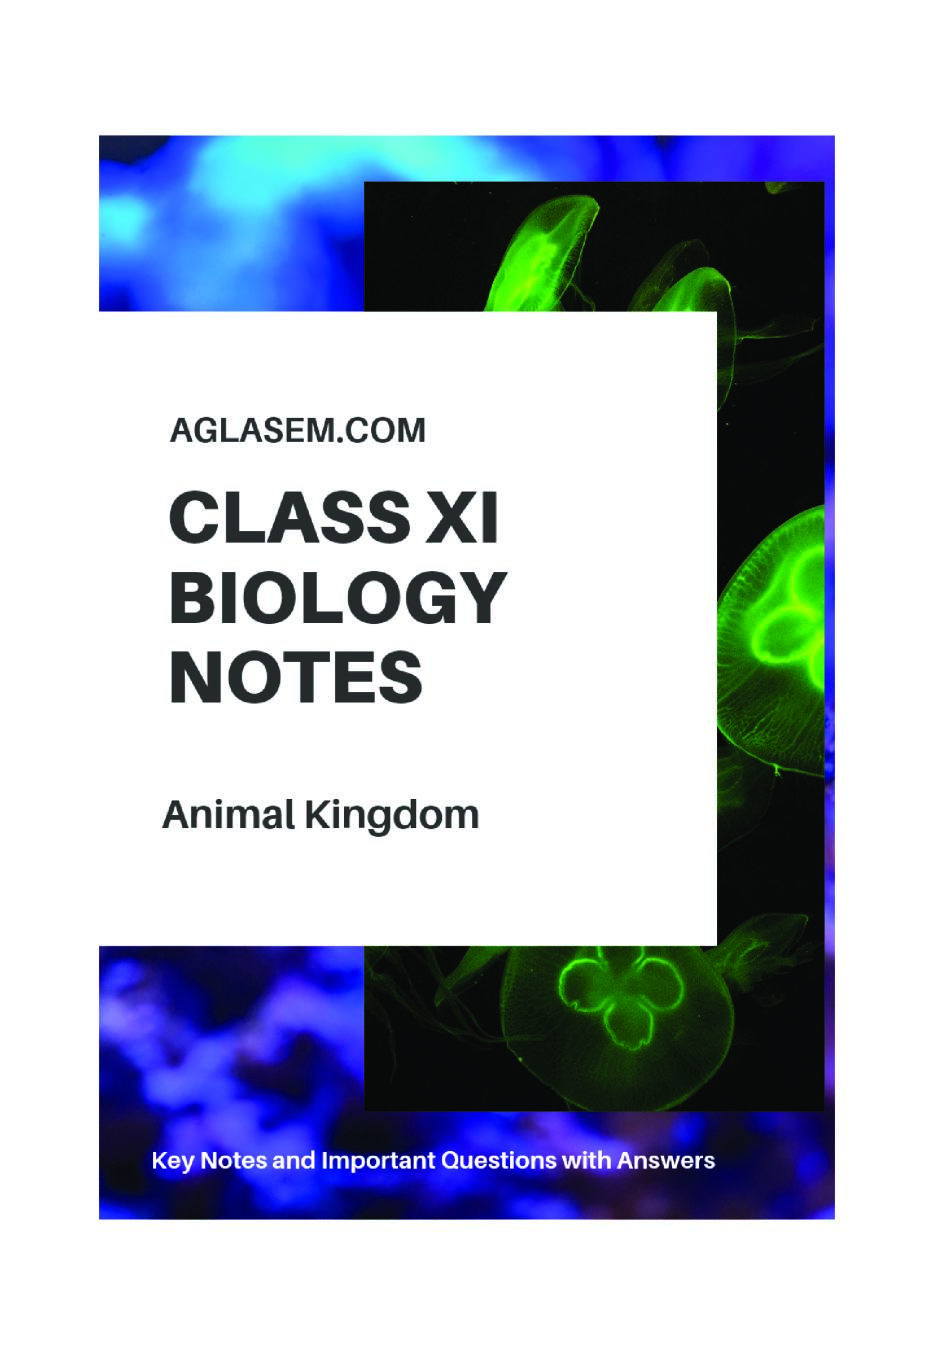 Class 11 Biology Notes for Animal Kingdom